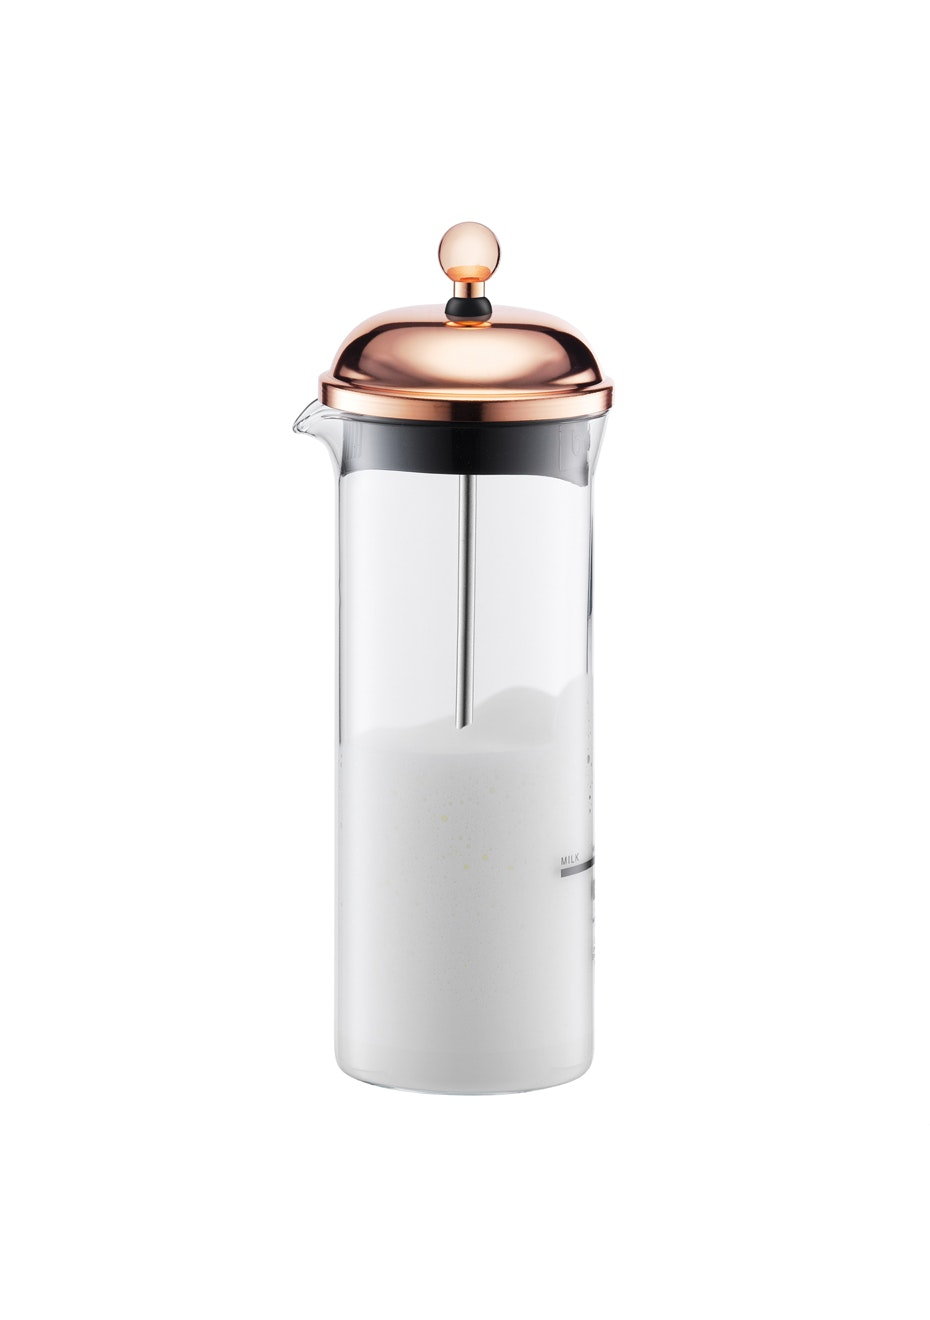 Bodum - Chambord Milk Frother - Copper